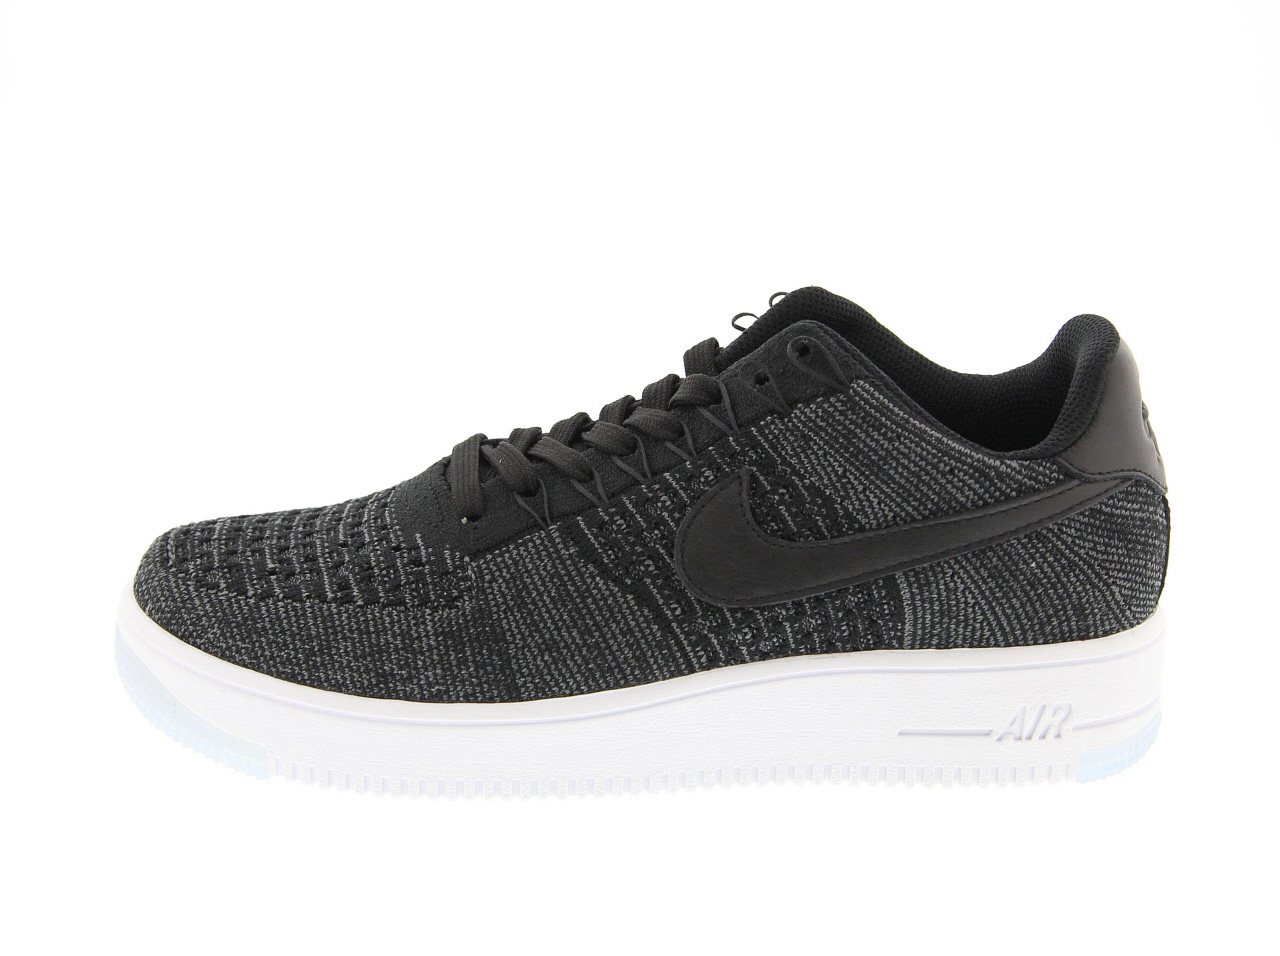 NIKE AF1 ULTRA FLYKNIT LOW (817419-004) BLACK/BLACK-DARK GREY-WHITE